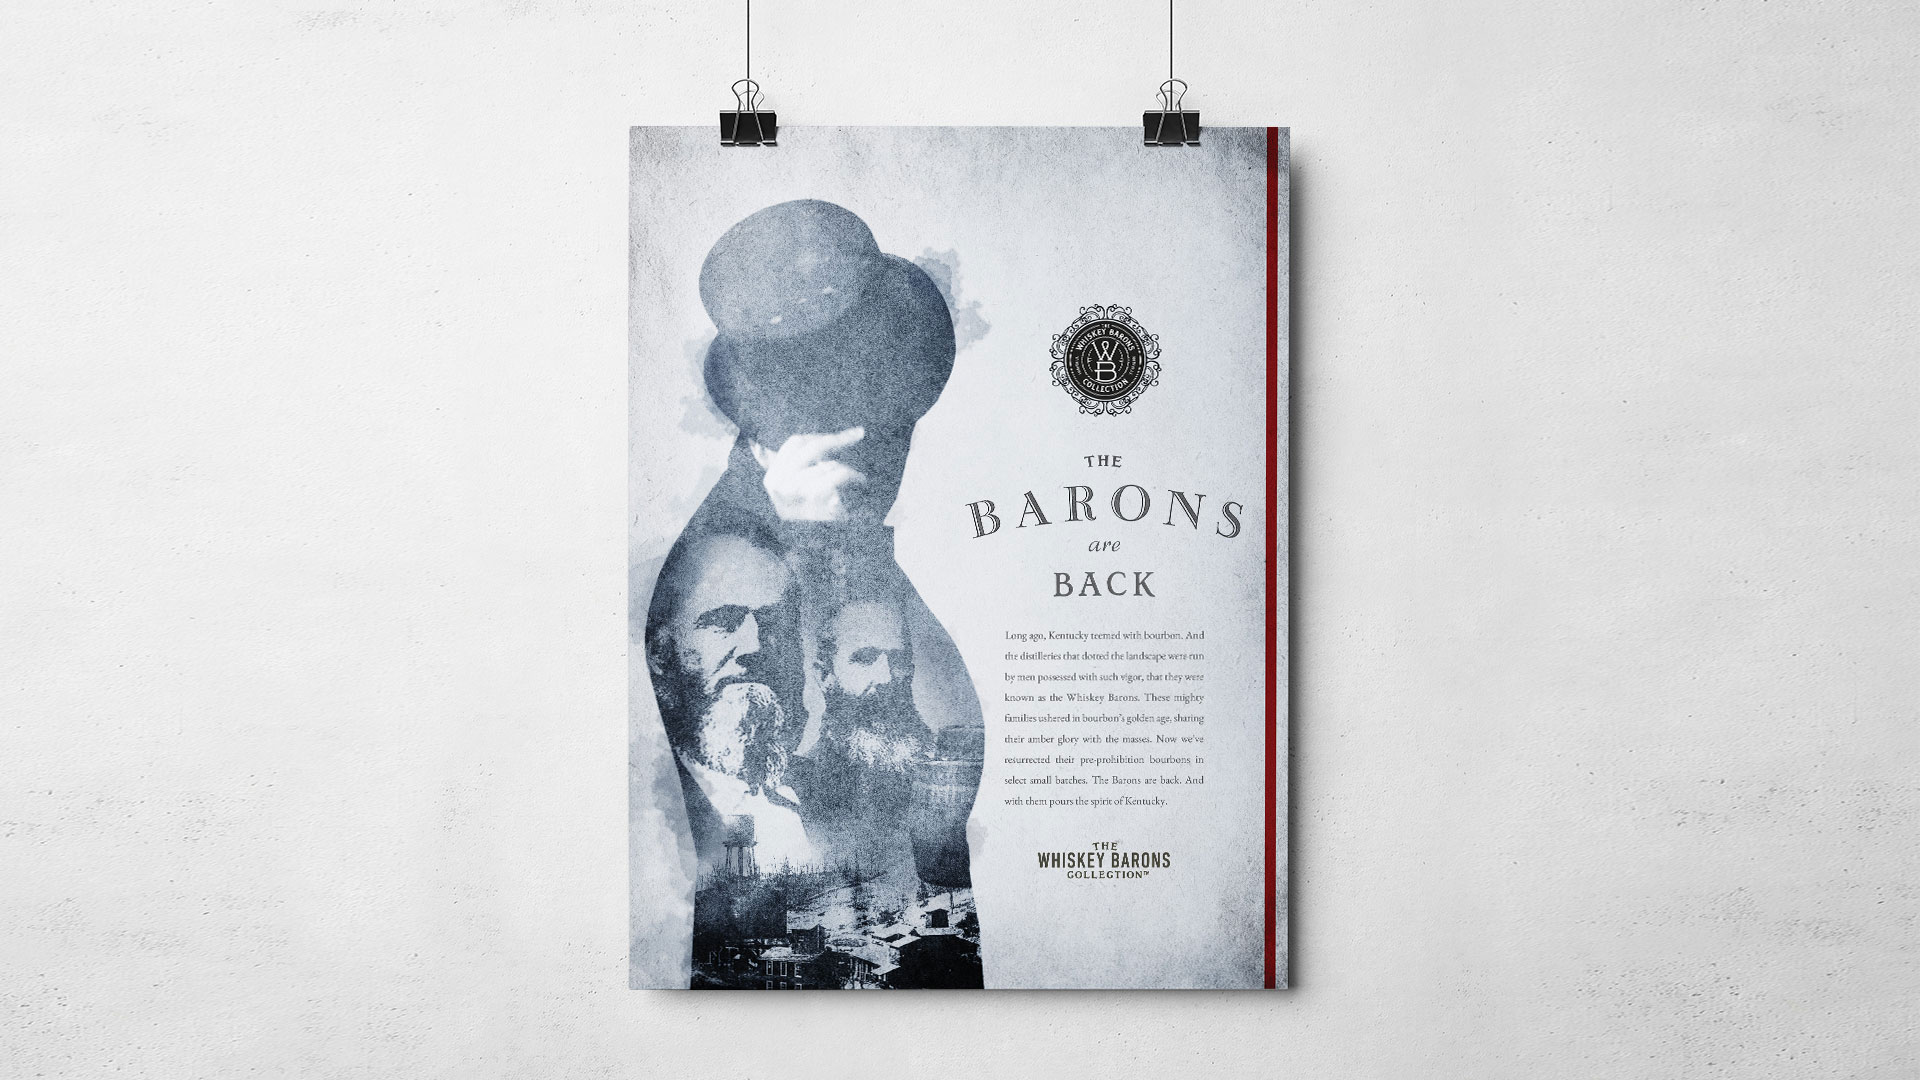 TheWhiskeyBarons_Poster.jpg